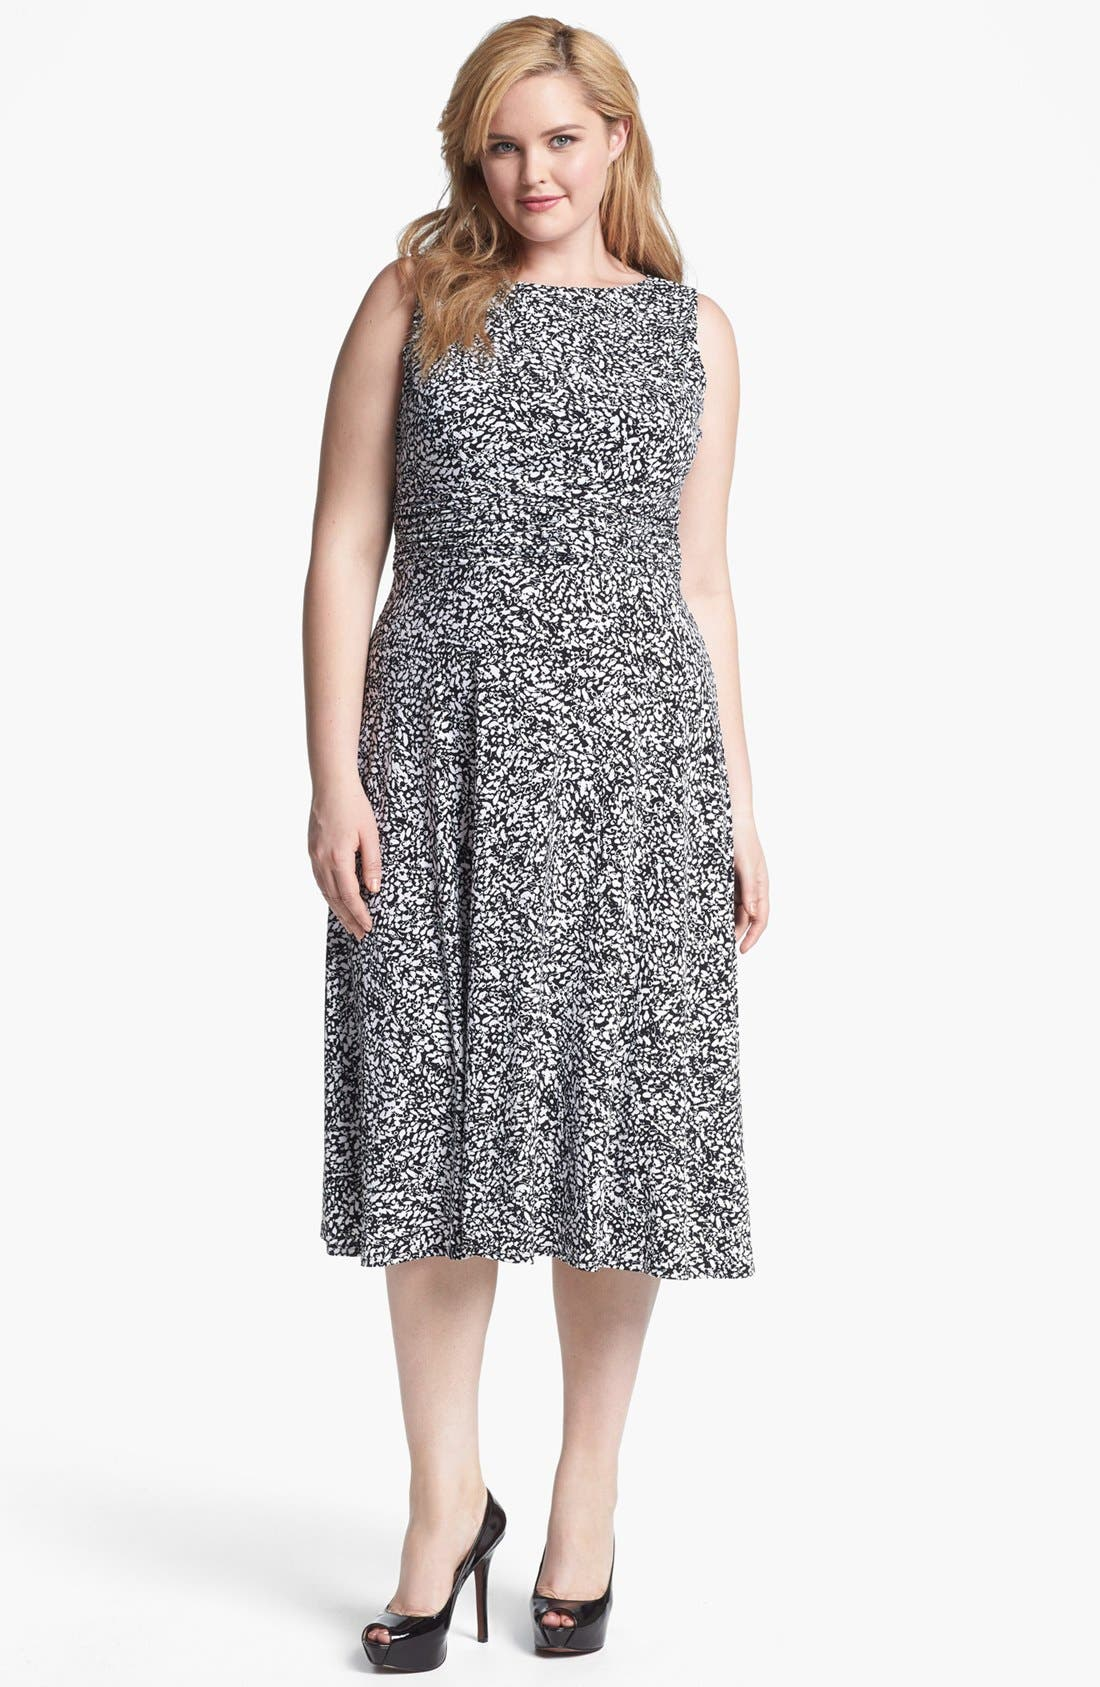 Alternate Image 1 Selected - Jessica Howard Print Sleeveless Jersey Dress (Plus Size)